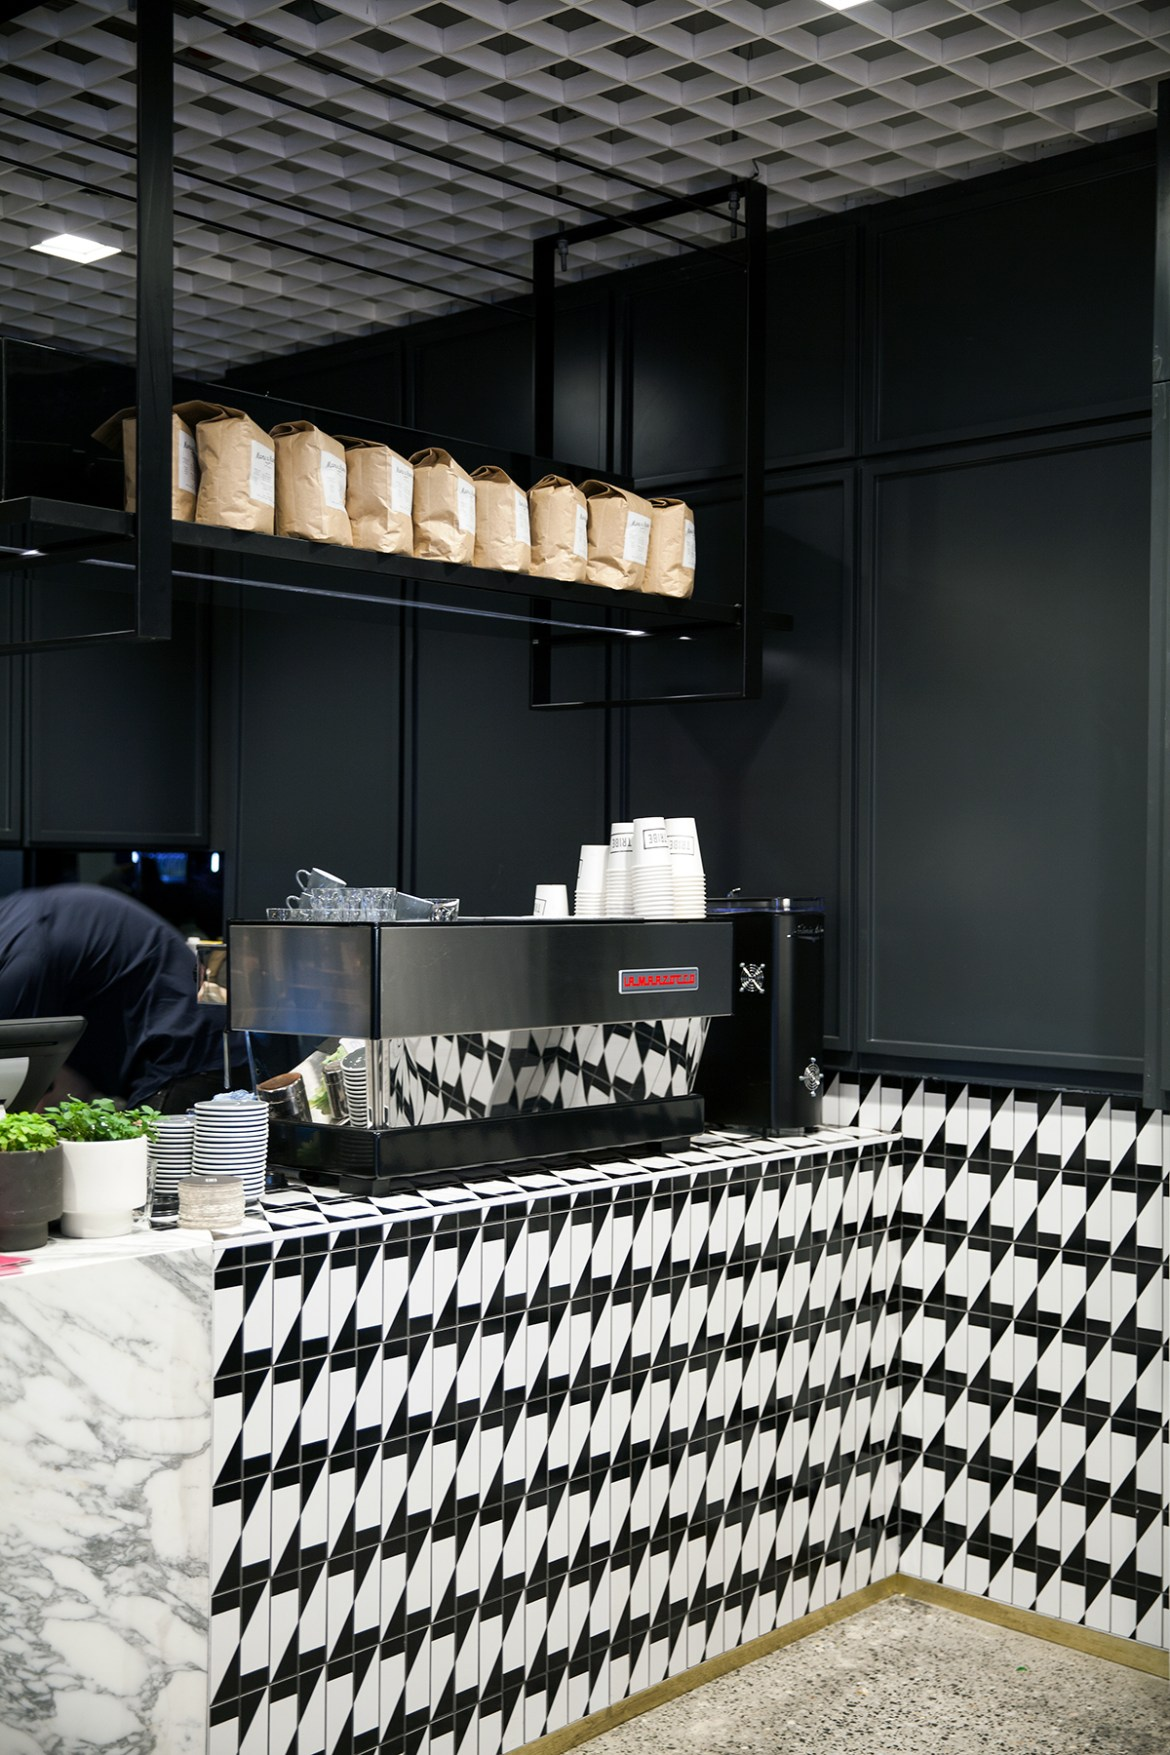 Tribe Hotel Perth, coffee bar Jenelle from travel blog Inspiring Wit boutique hotel profile